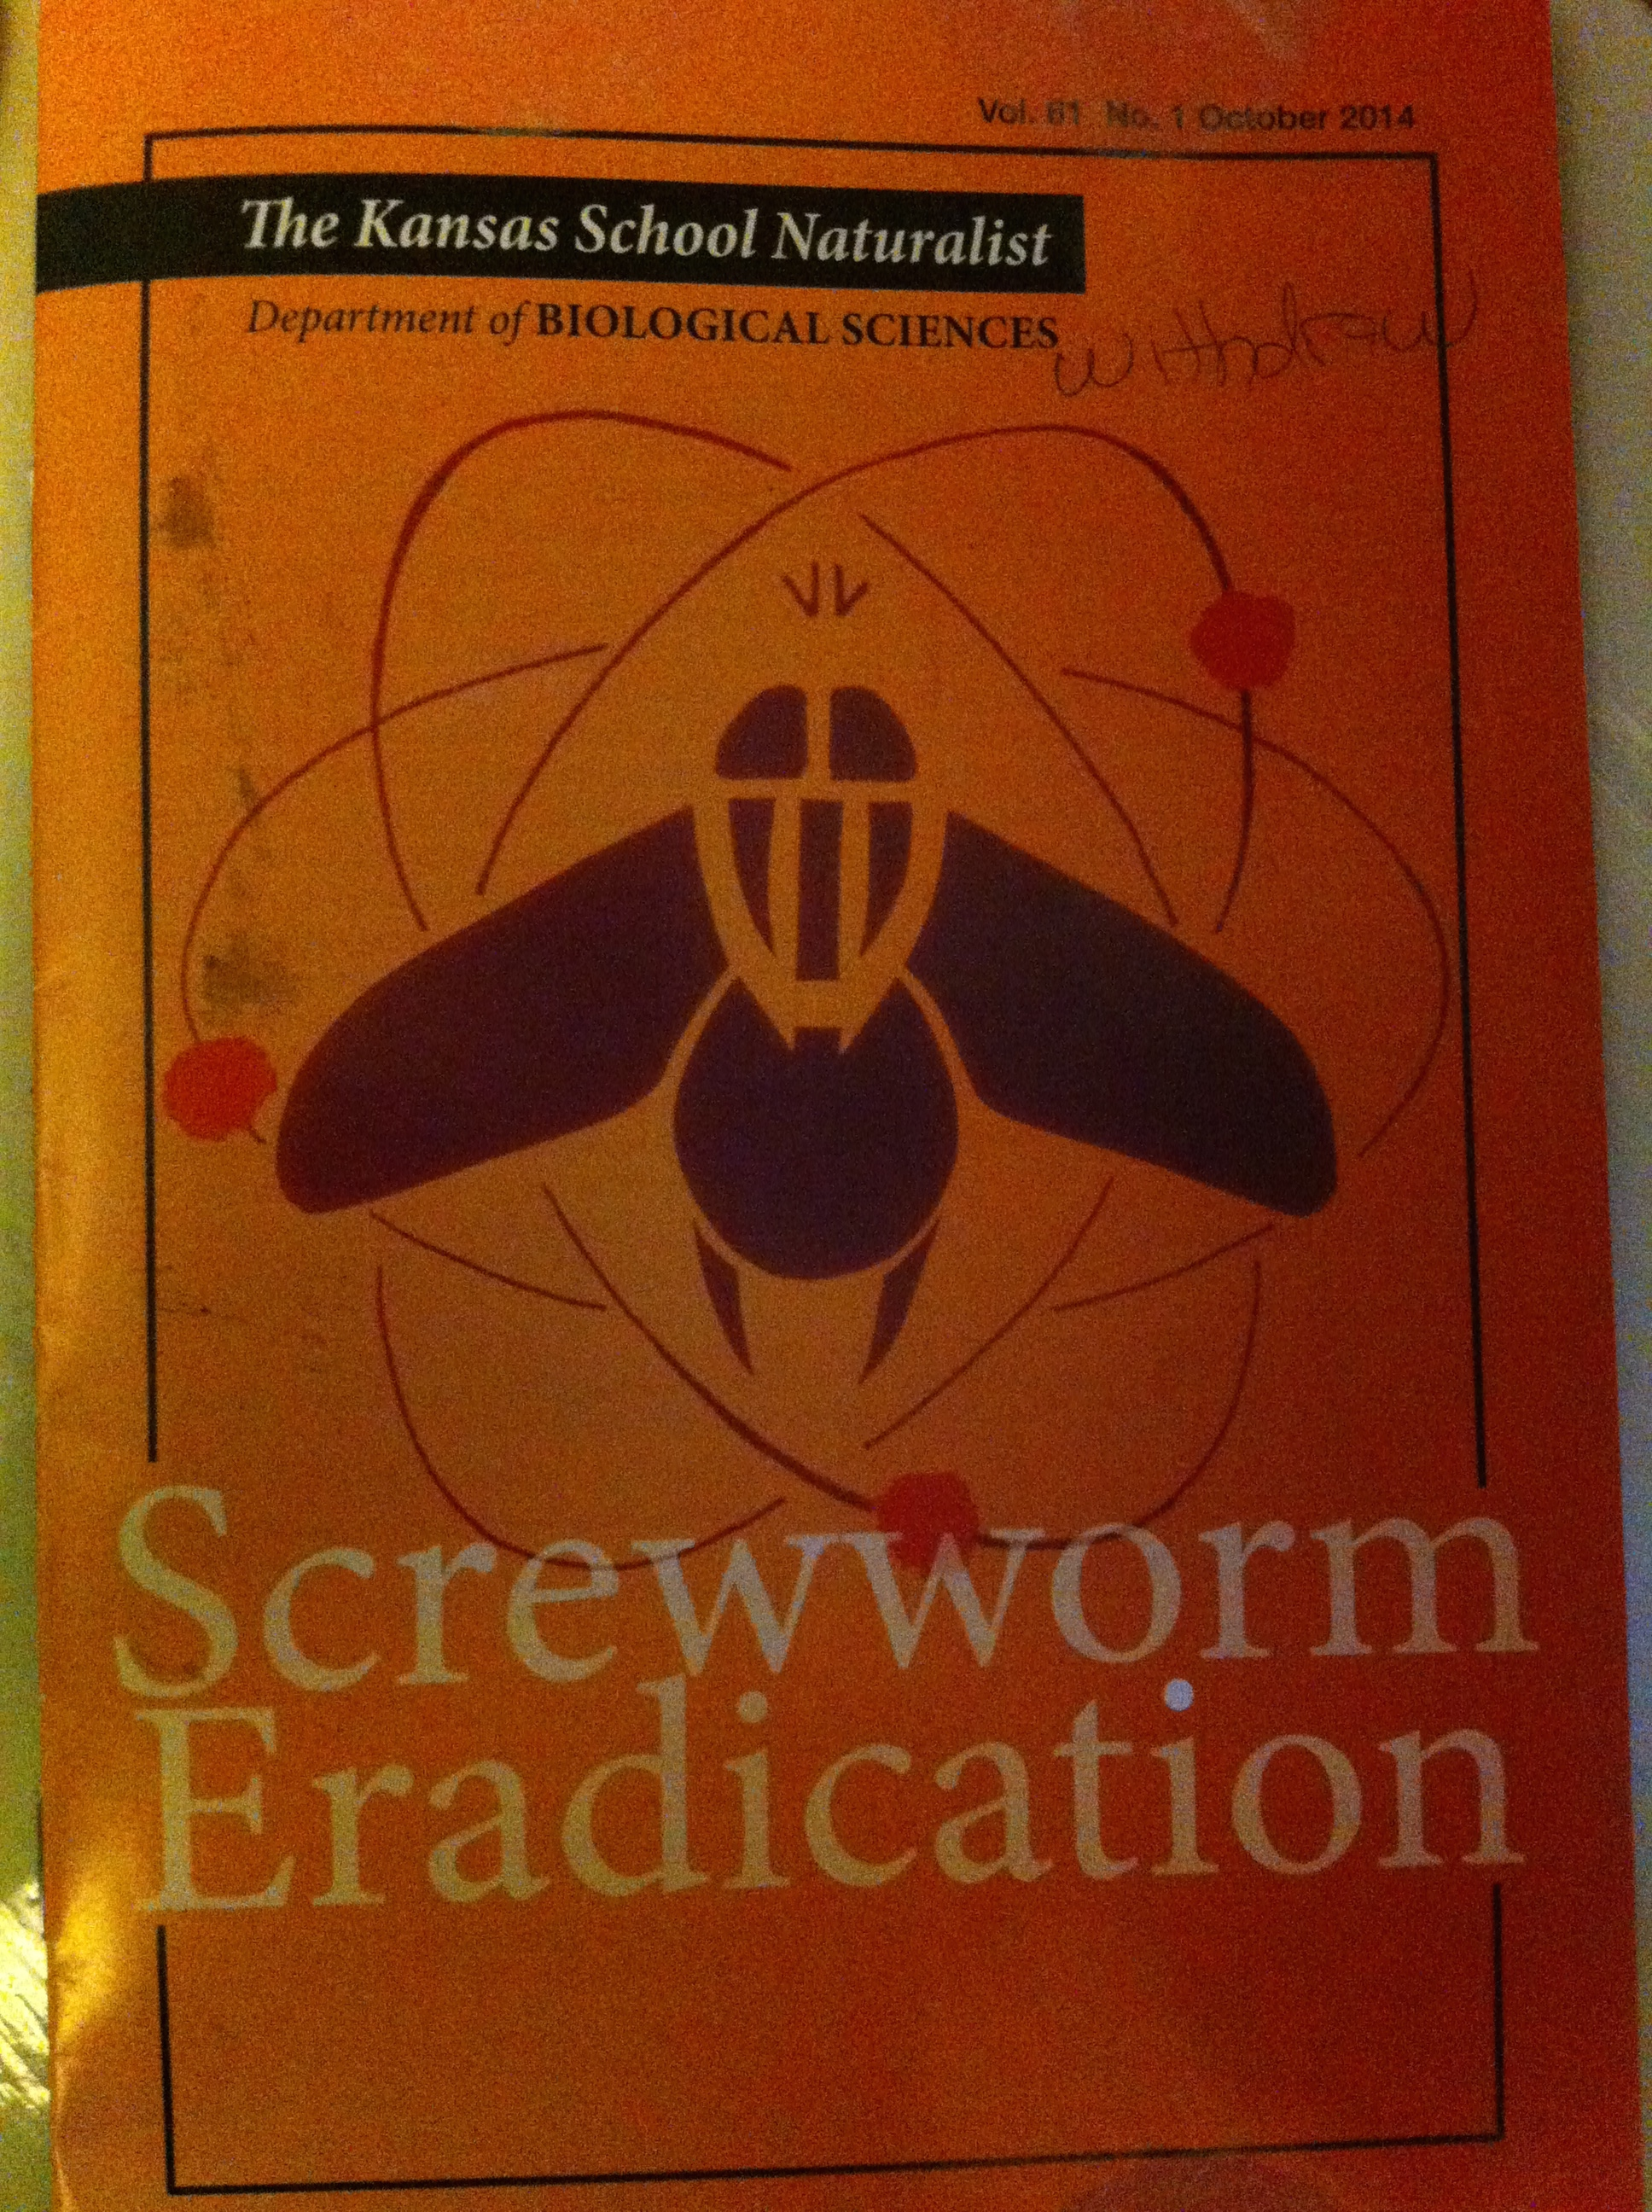 Lucky me got some free literature on screwworm eradication from a friendly Penn State librarian.